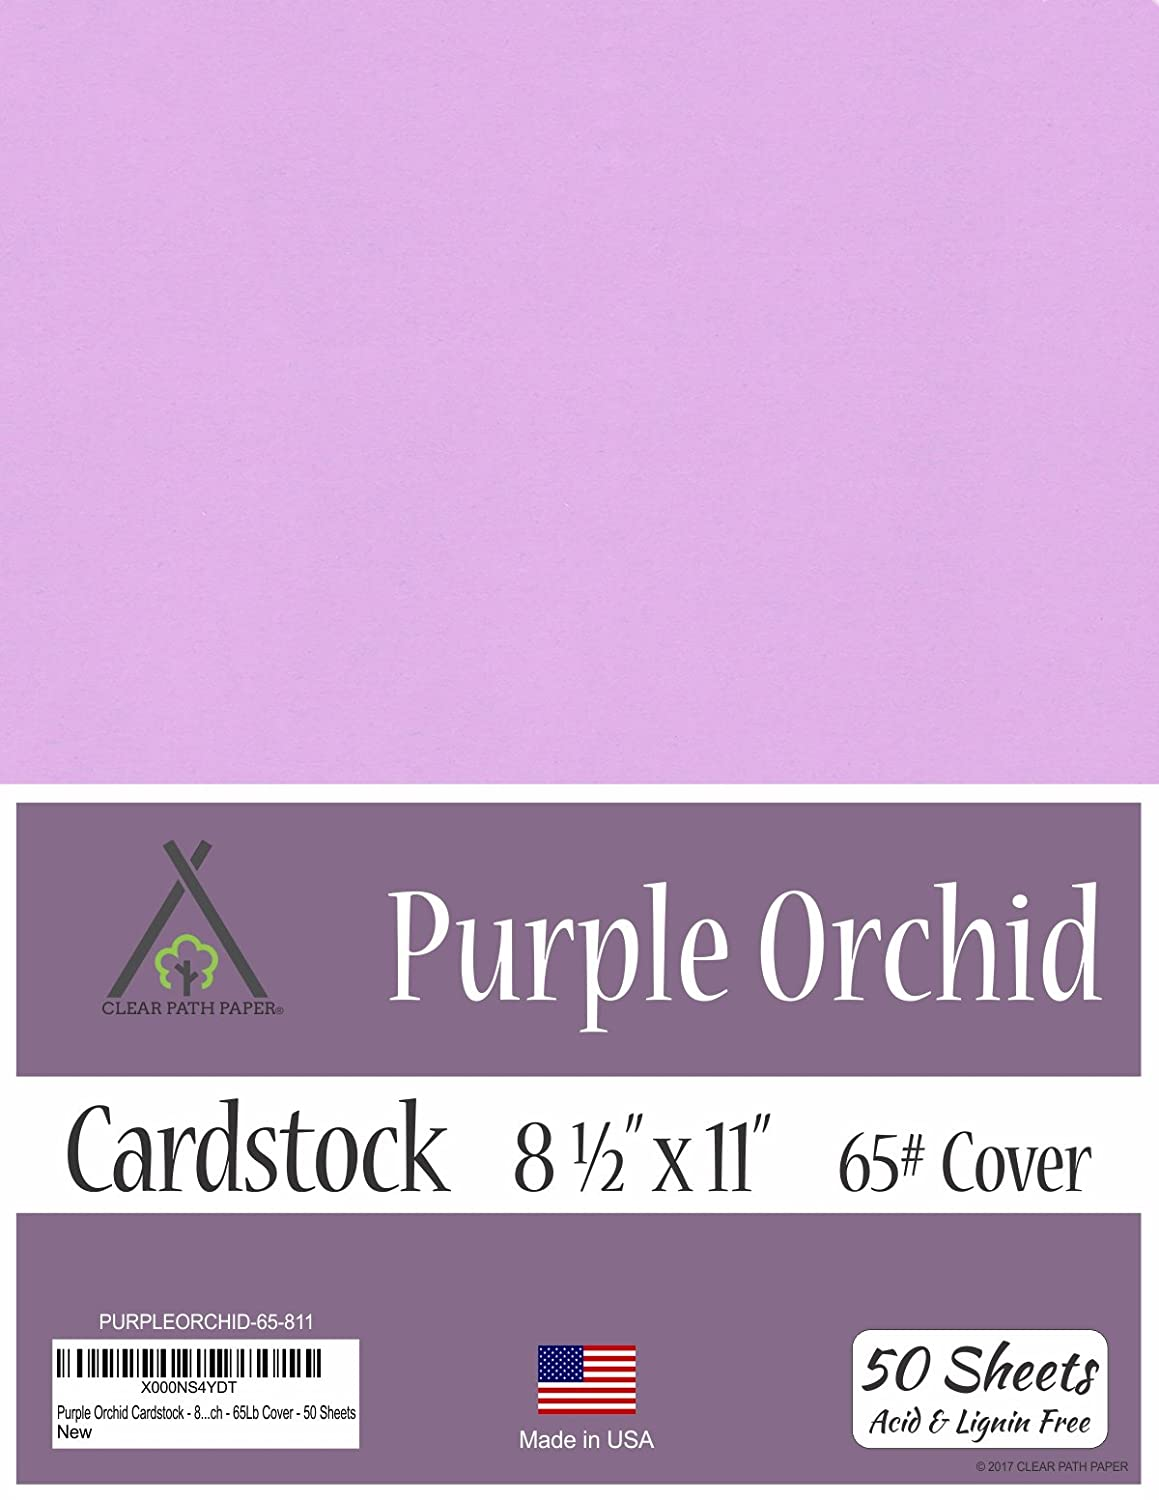 Purple Orchid Cardstock - 8.5 x 11 inch - 65Lb Cover - 50 Sheets Clear Path Paper 4336868156